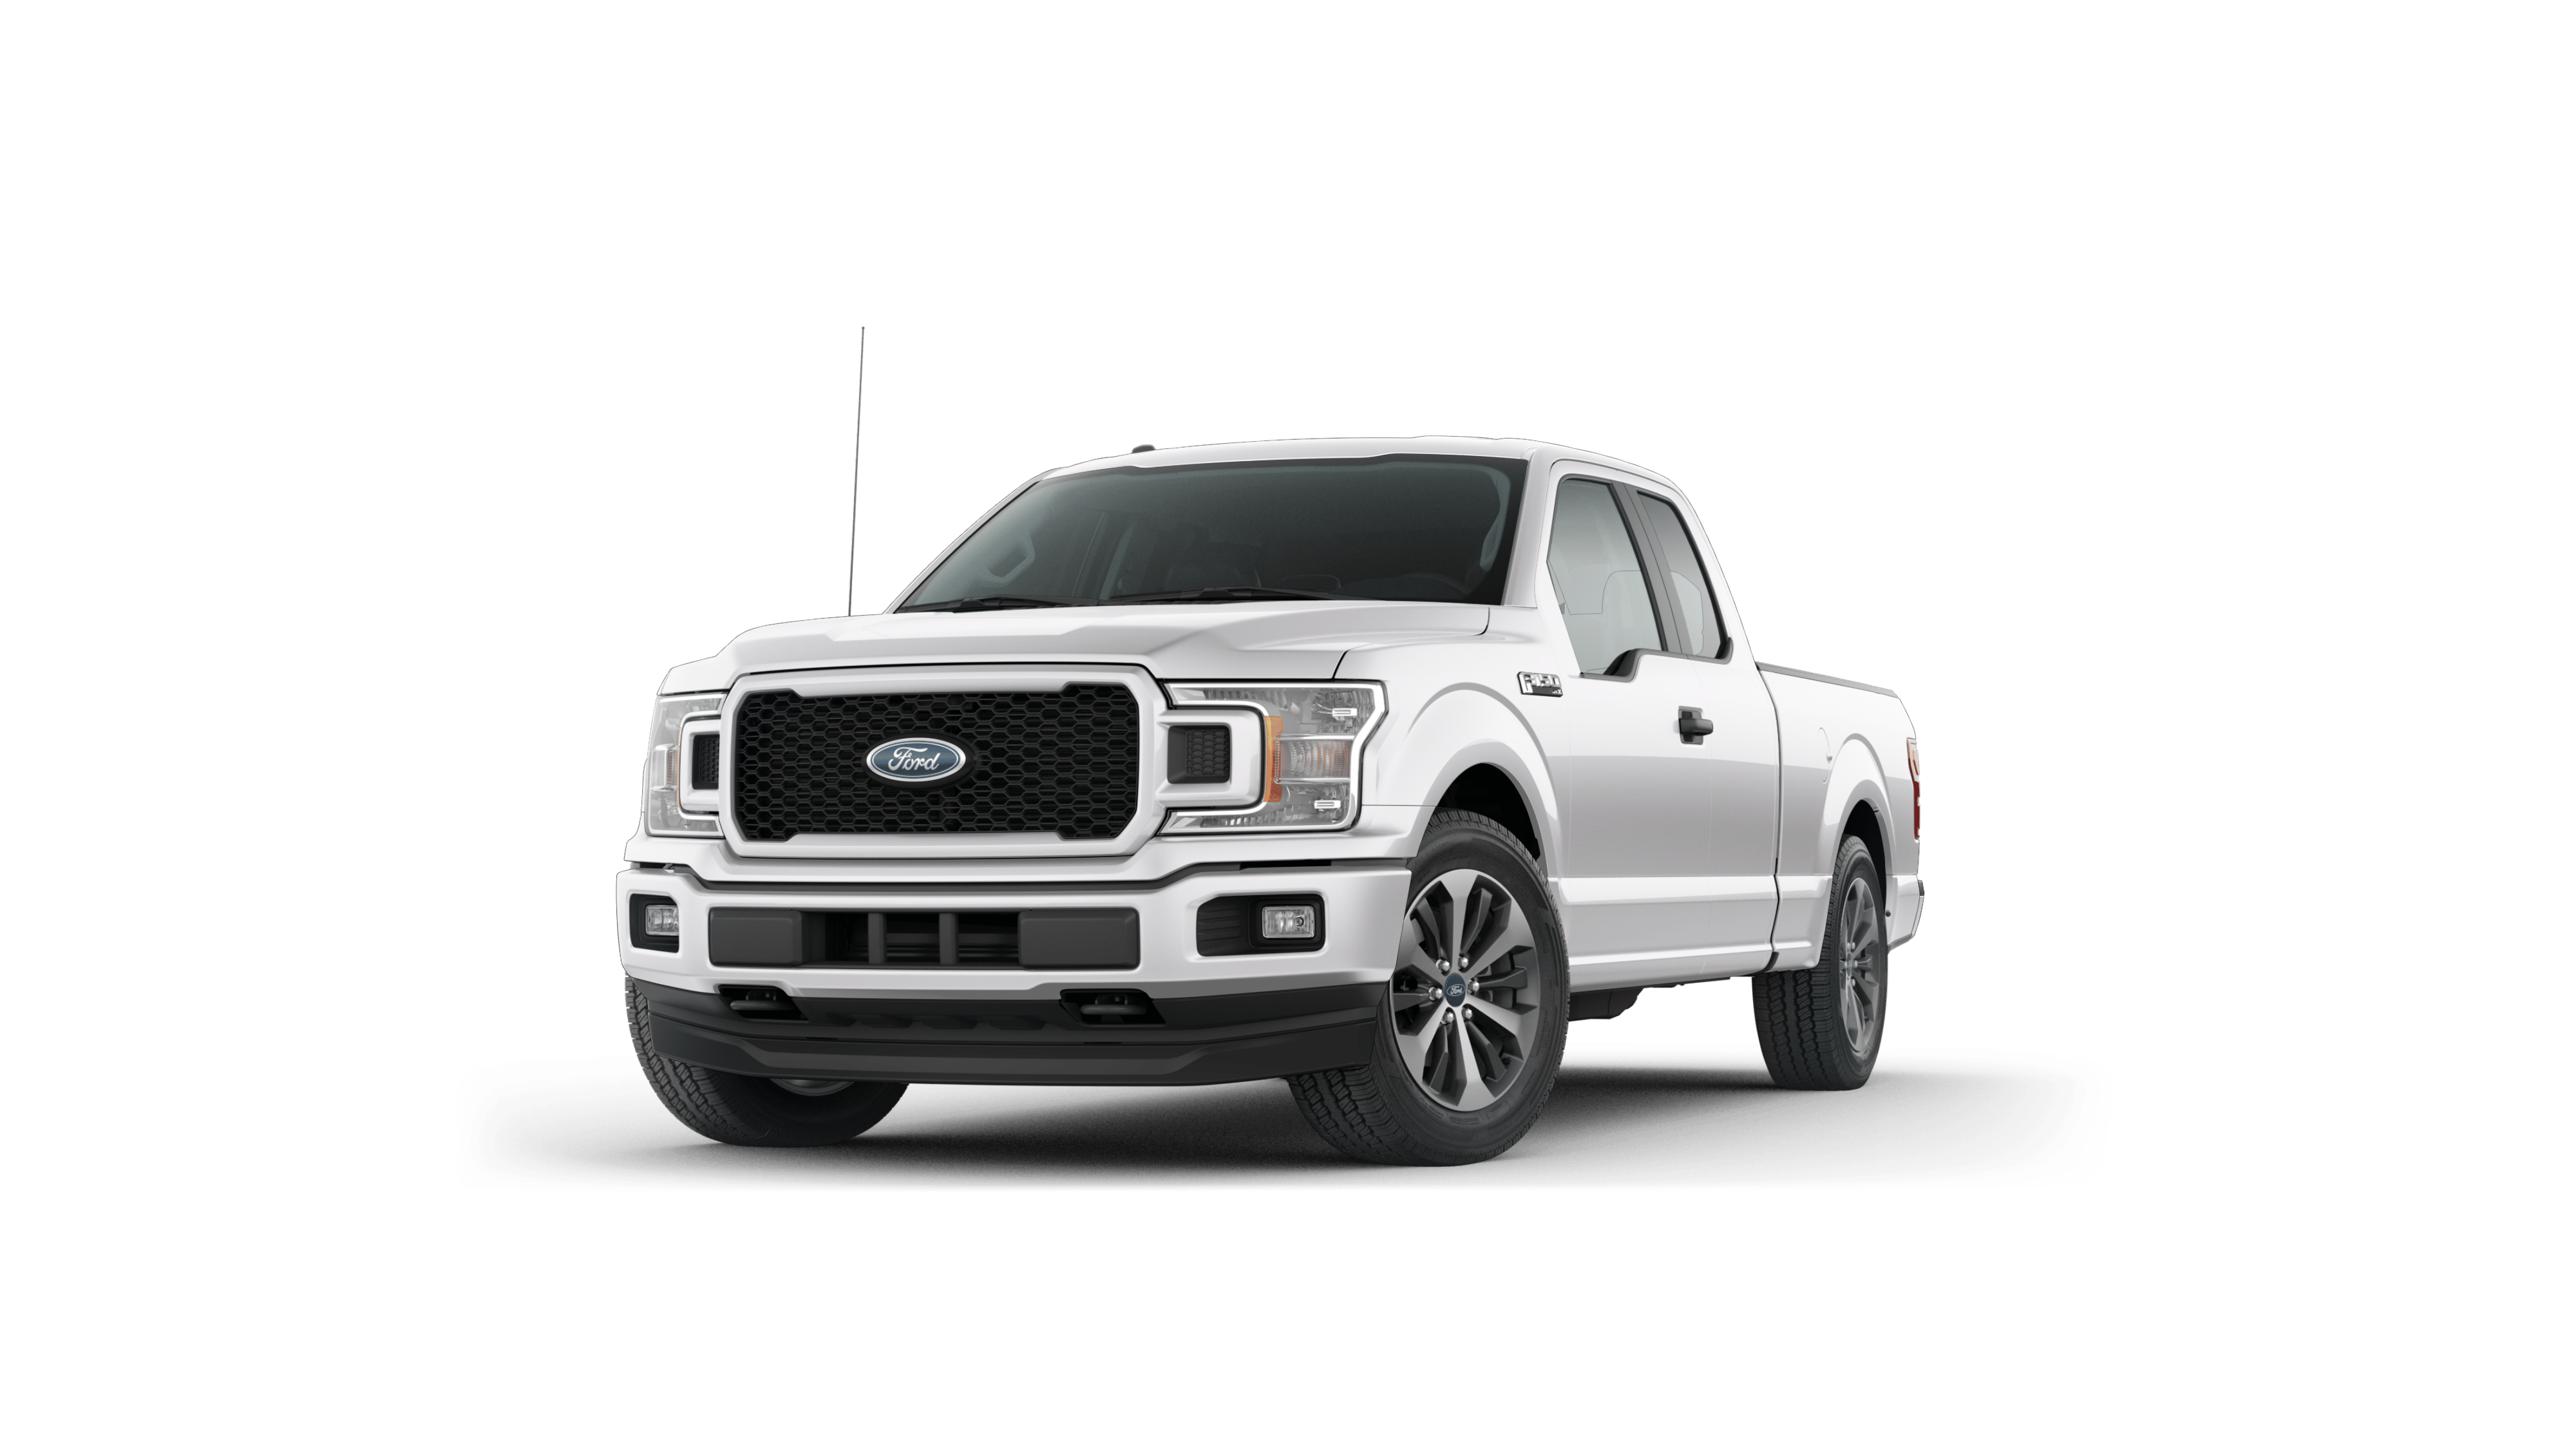 new for sale in Elmira, NY - Ferrario Ford